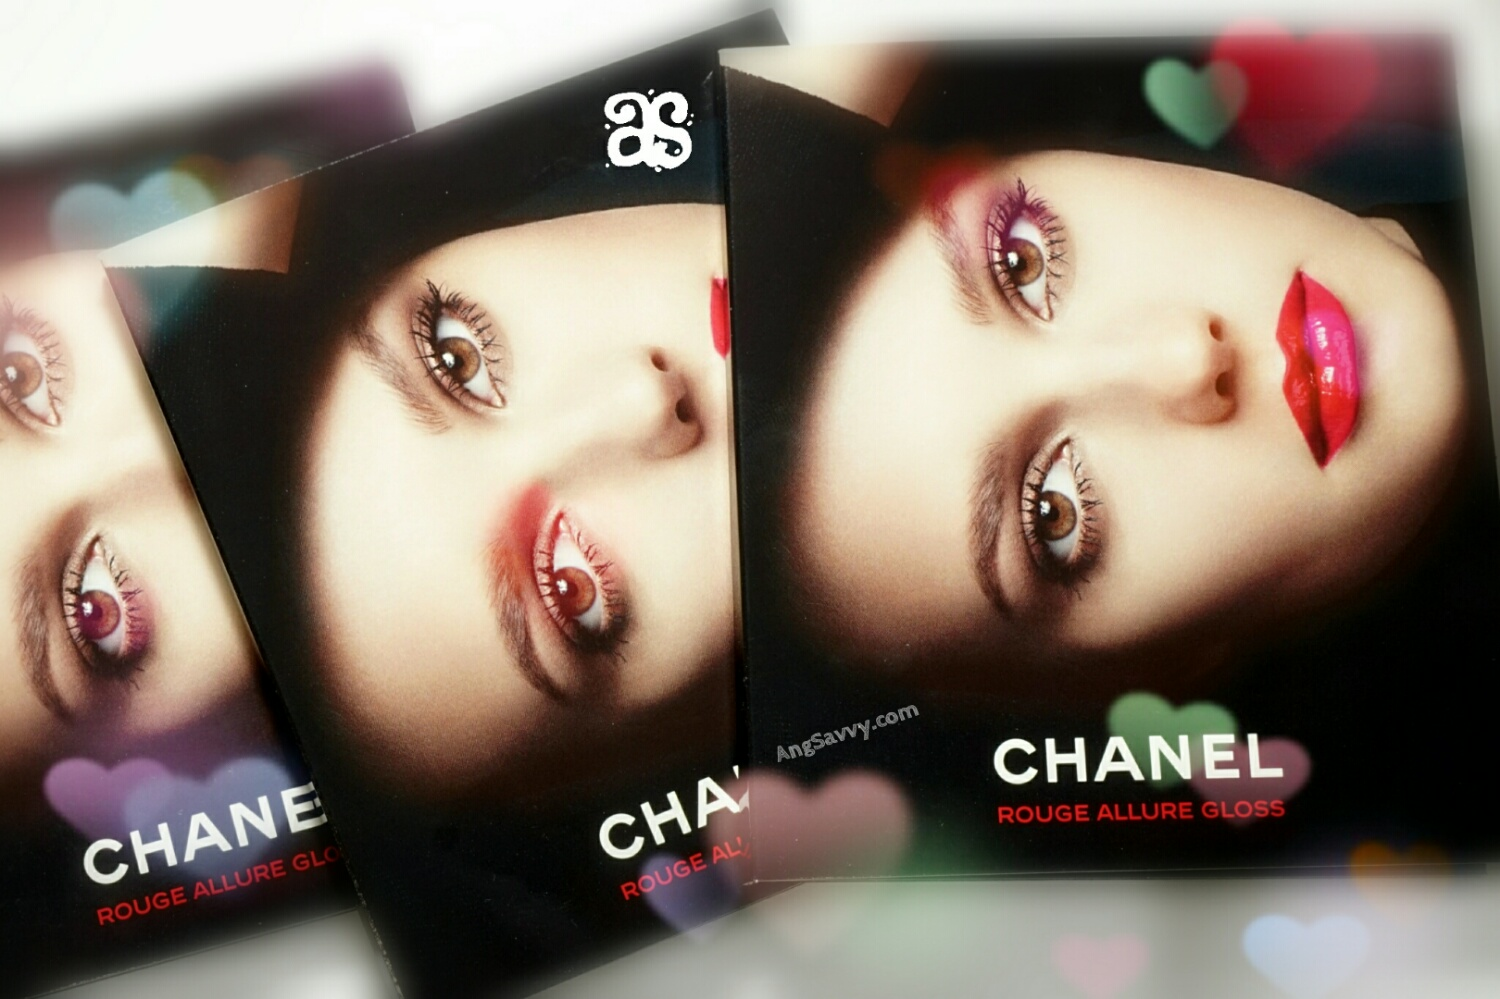 Chanel Rouge Allure Gloss Samples Giveaway